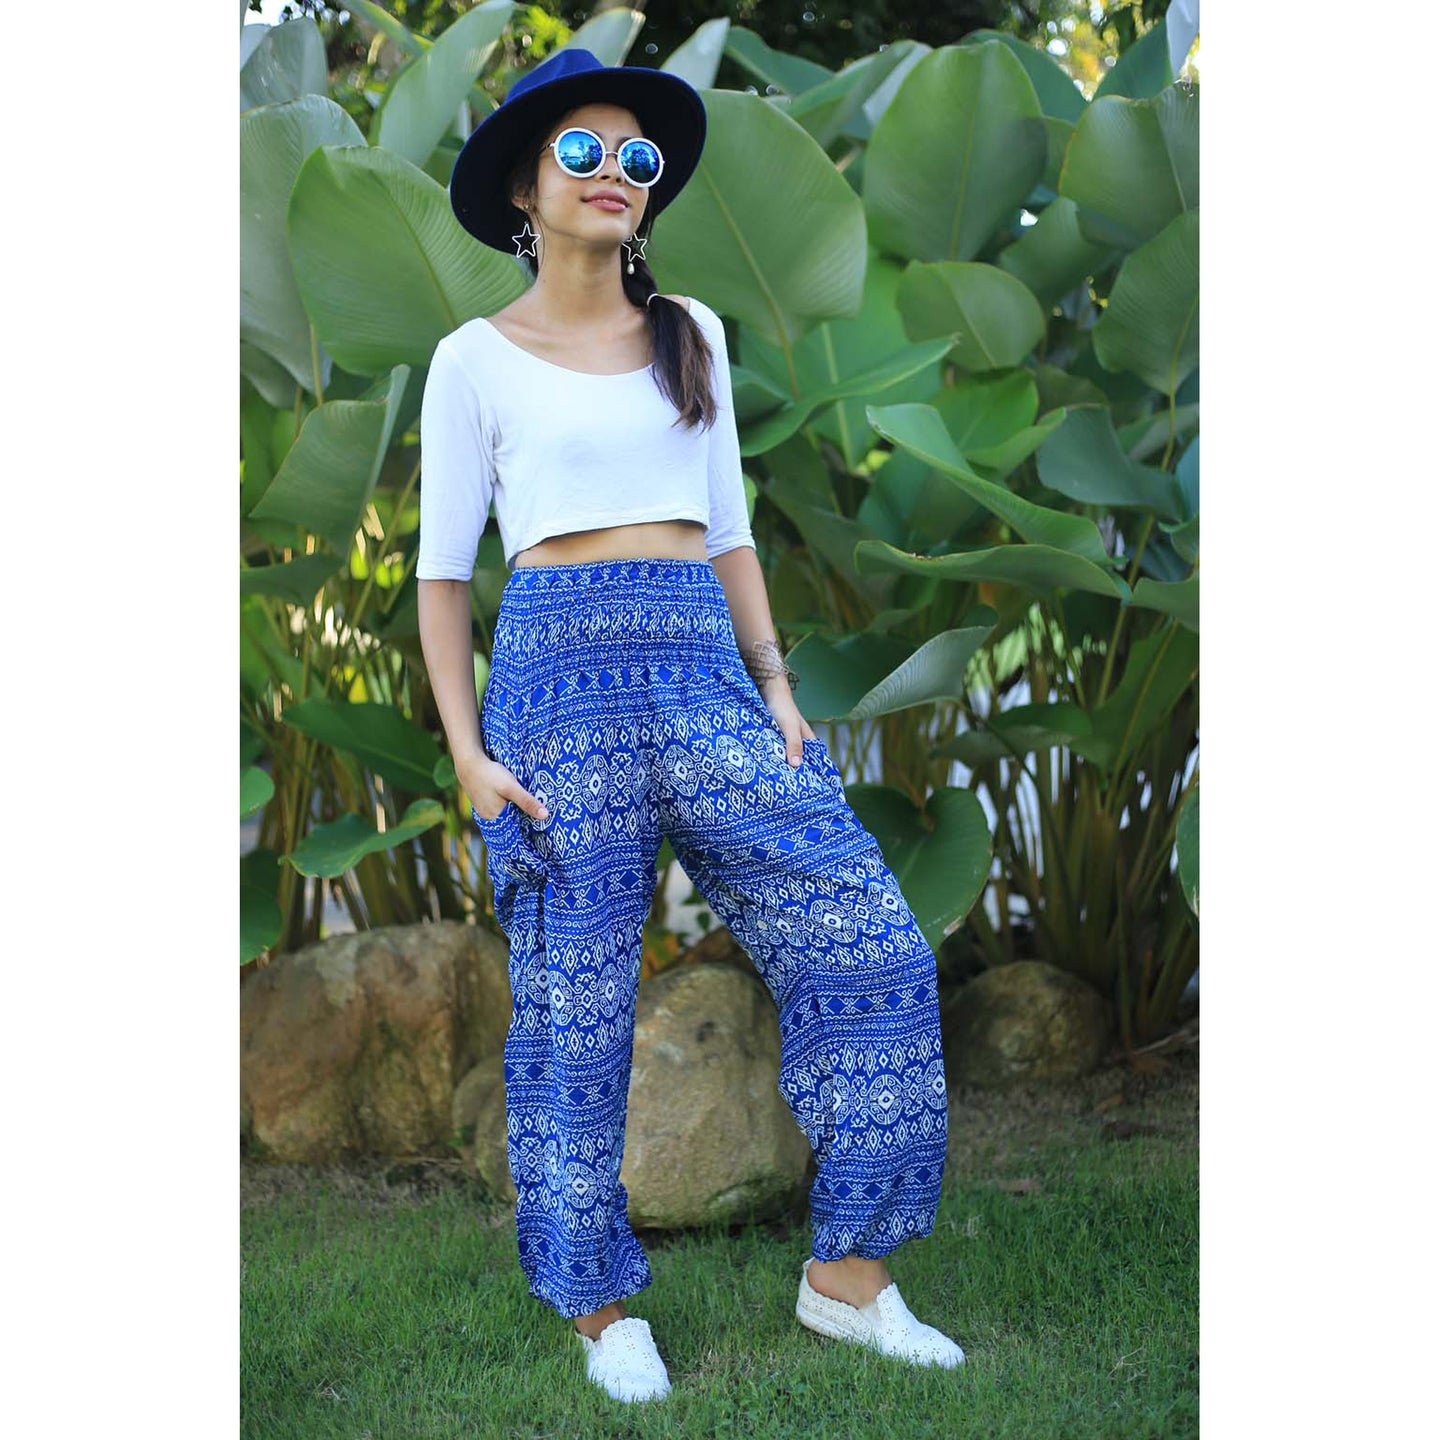 Hilltribe strip women's harem pants in Bright Blue PP0004 020049 02